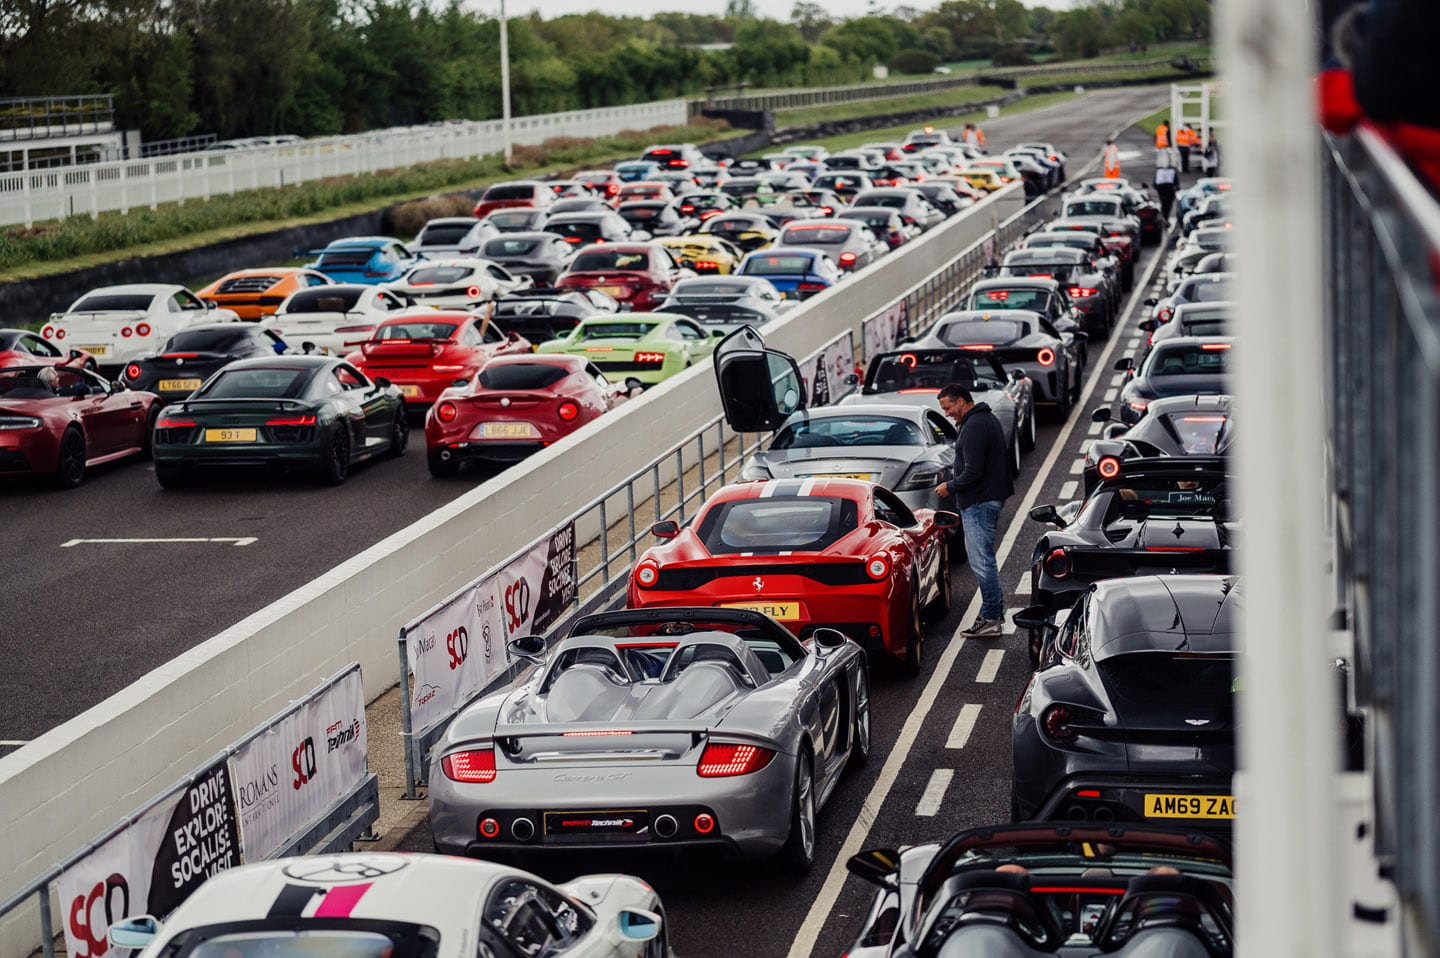 Bring On The Thunder – 200 Supercars Descend On The Goodwood Motor Circuit